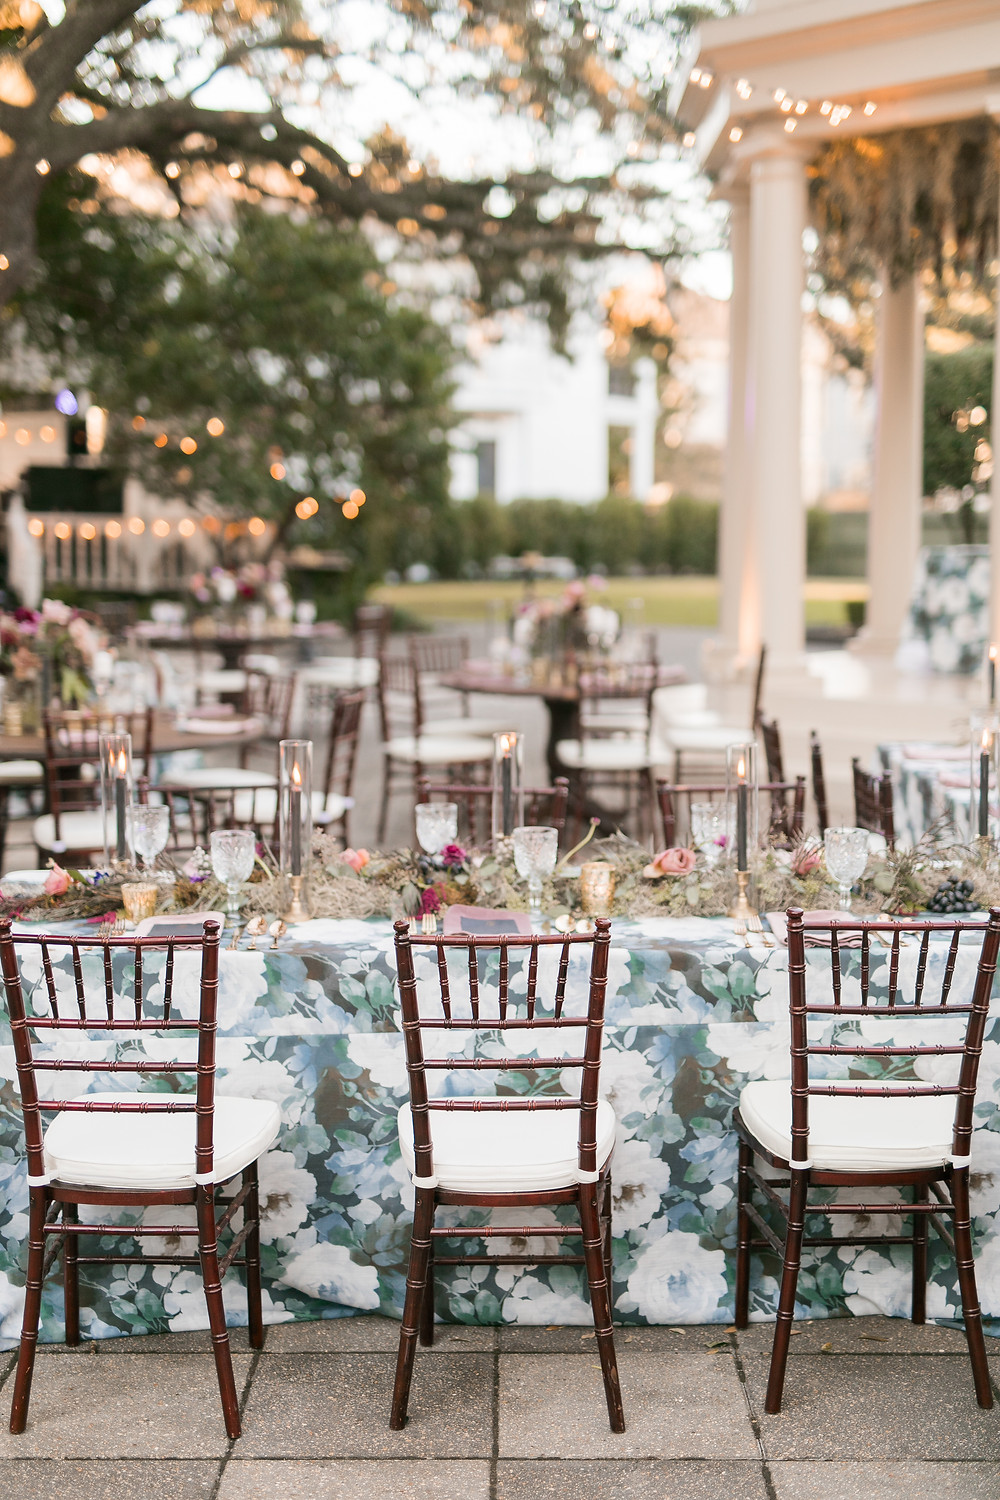 Elms Wedding with Southern, Gothic Drama and Charm | Lovegood Wedding & Event Rentals | Vintage, Specialty Rentals in the New Orleans Area